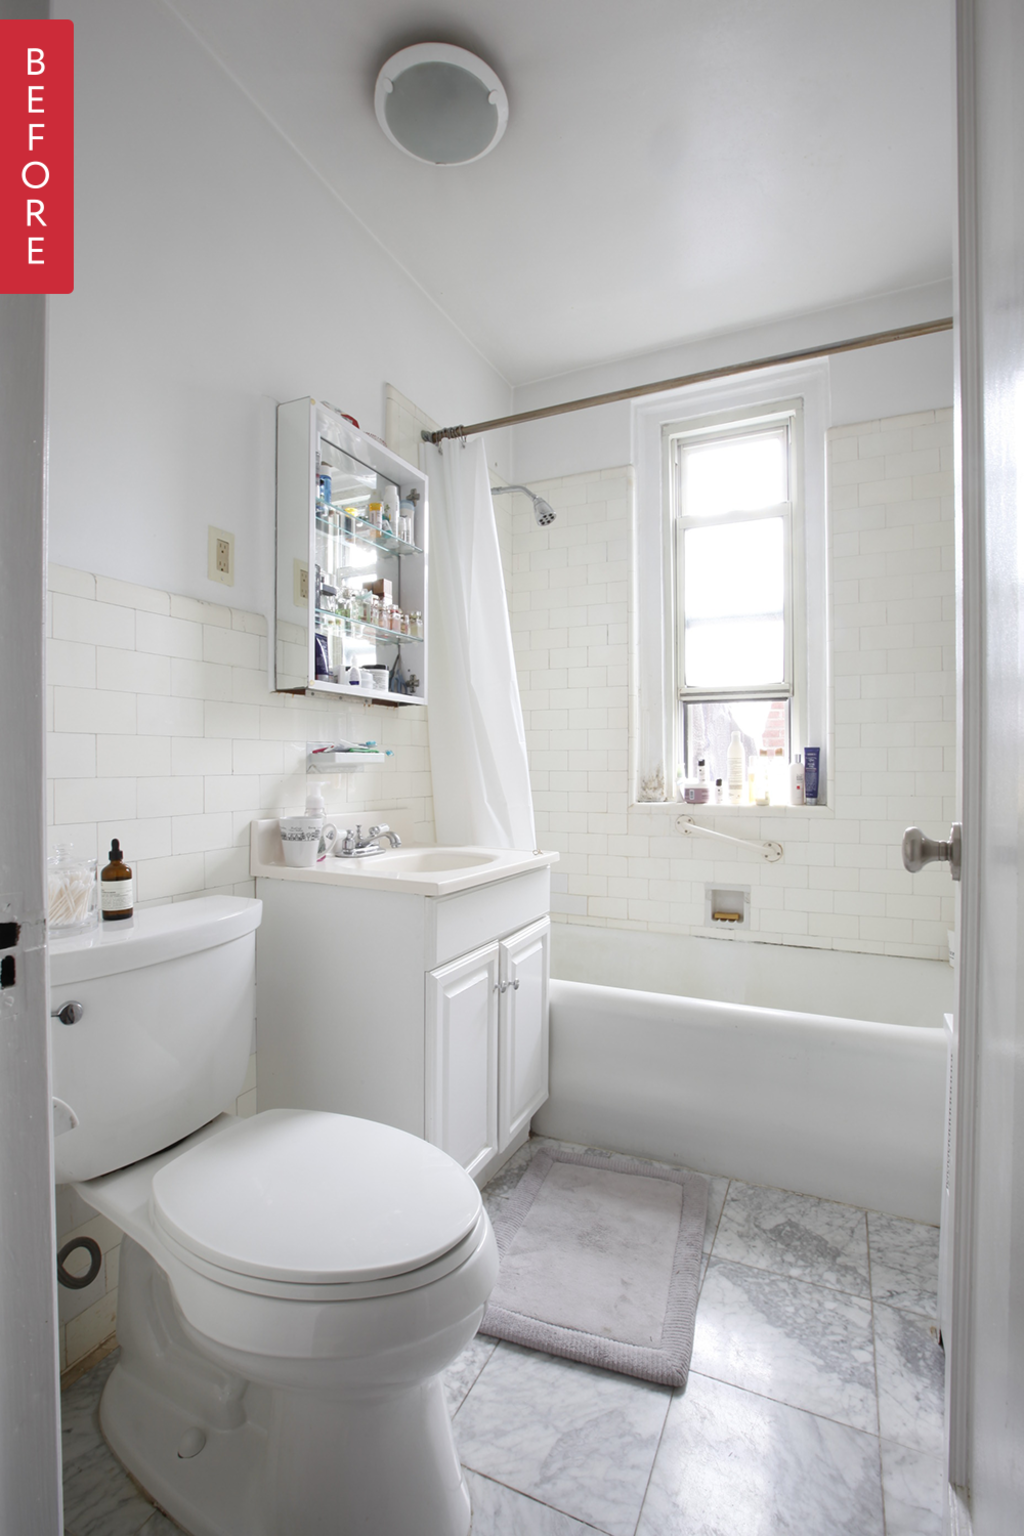 Before & After: A Fresh New Look for an Aging Bathroom